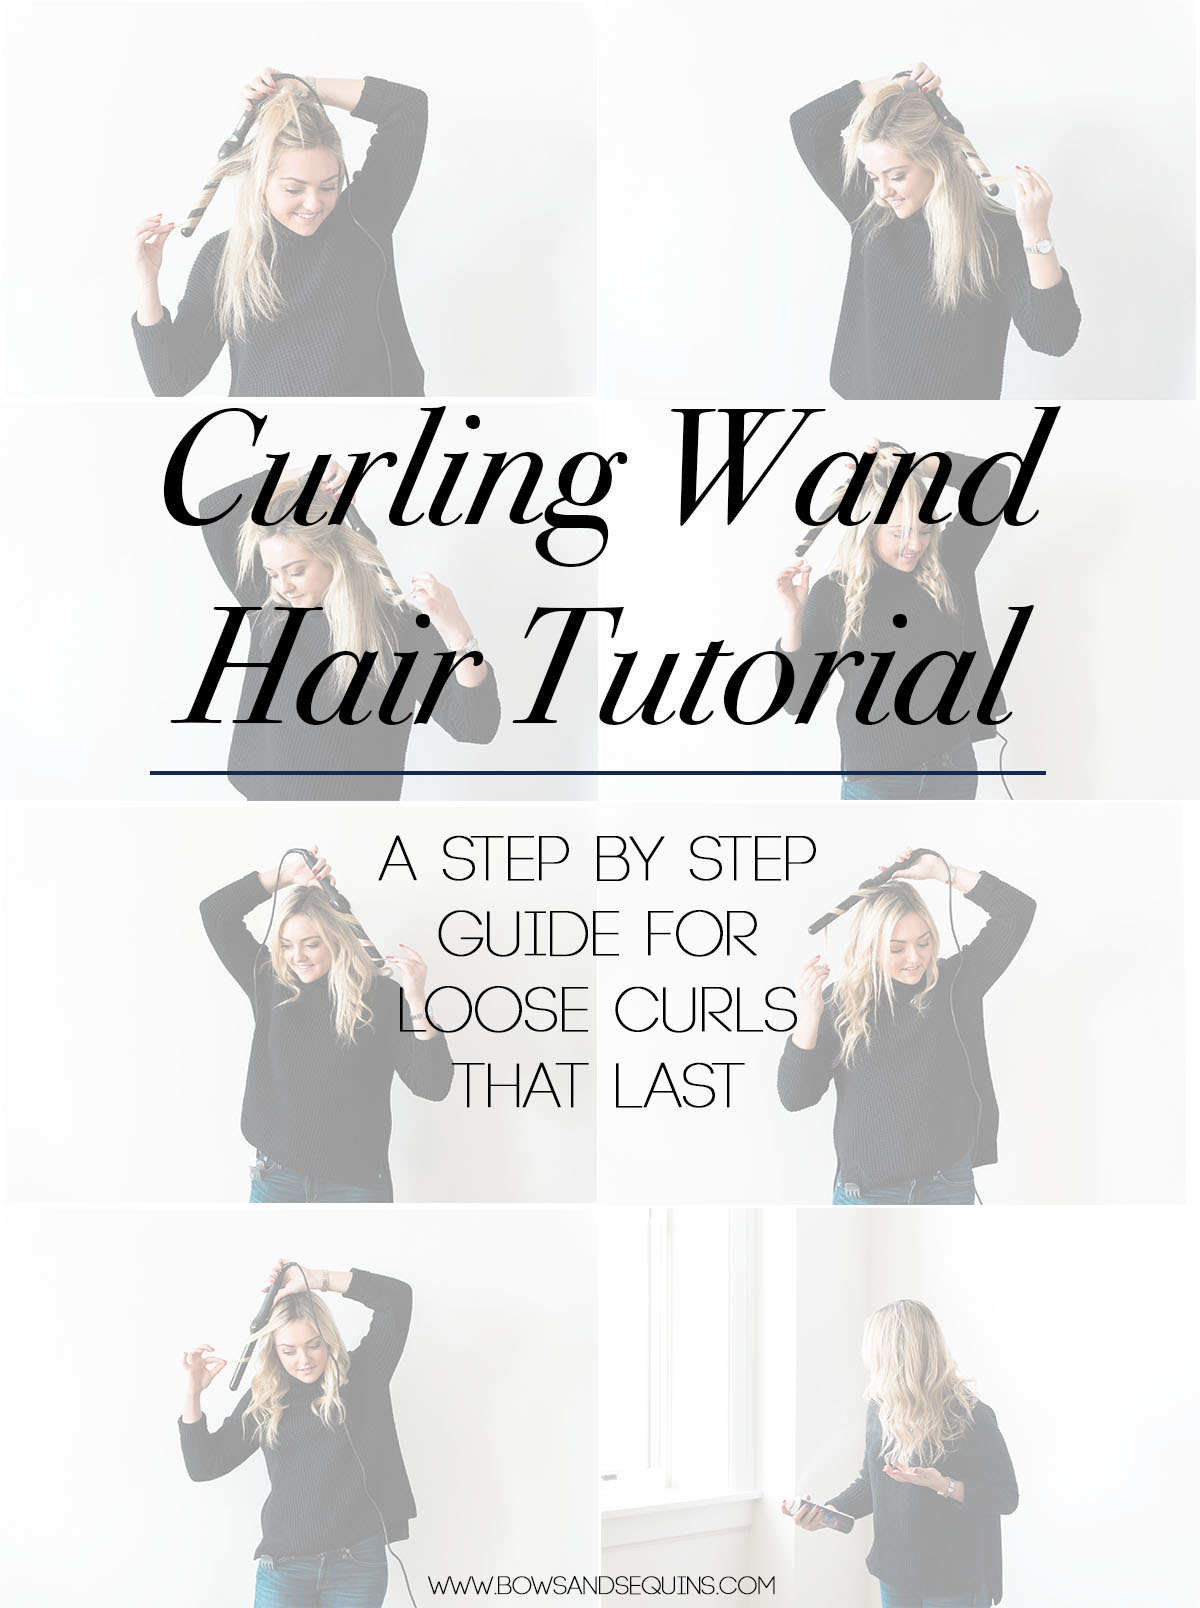 Bows & Sequins Curling Wand Hair Tutorial for Loose Curls & Waves